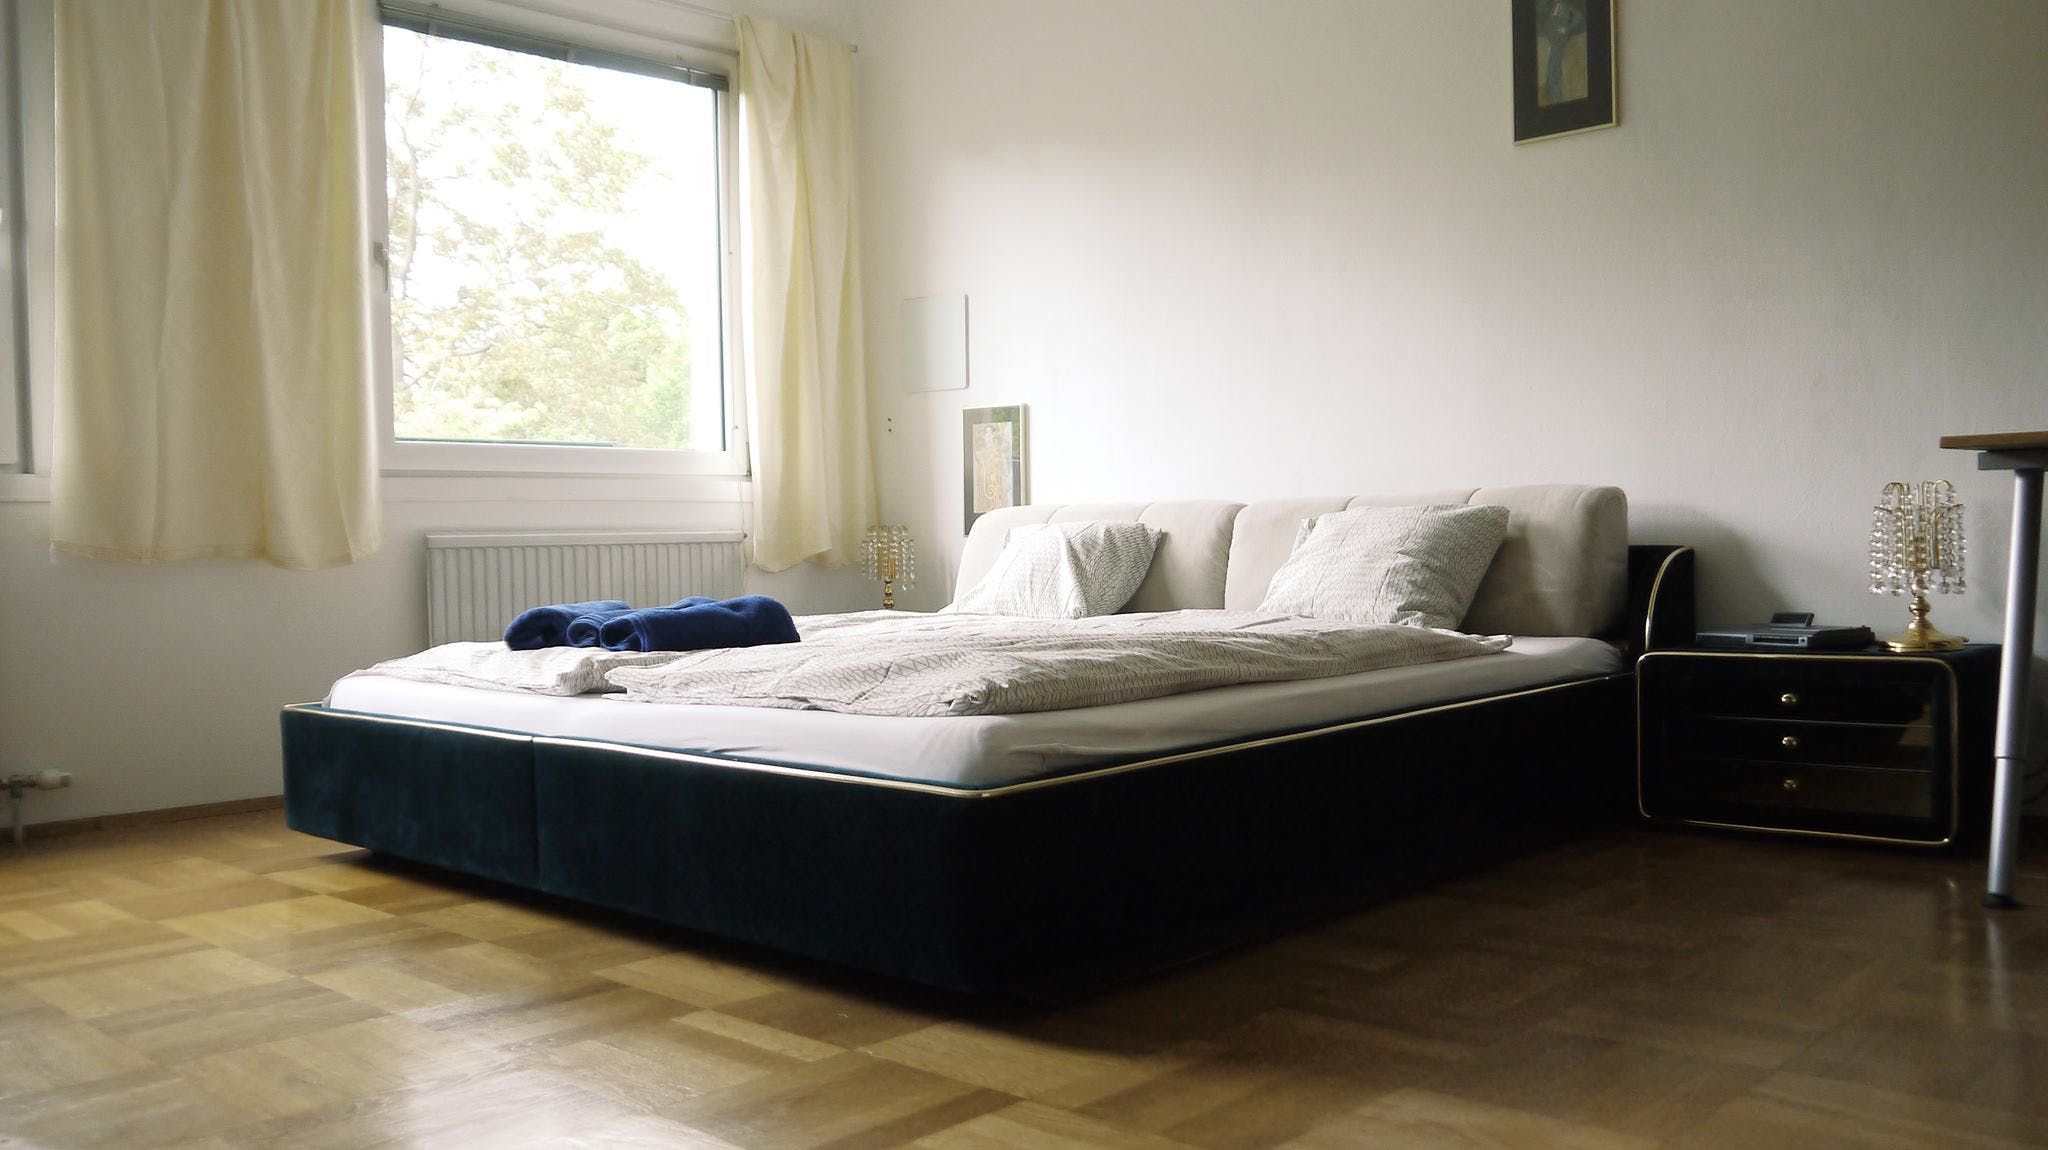 Holiday apartment Vienna, Billrothstraße, Holiday apartment for rent